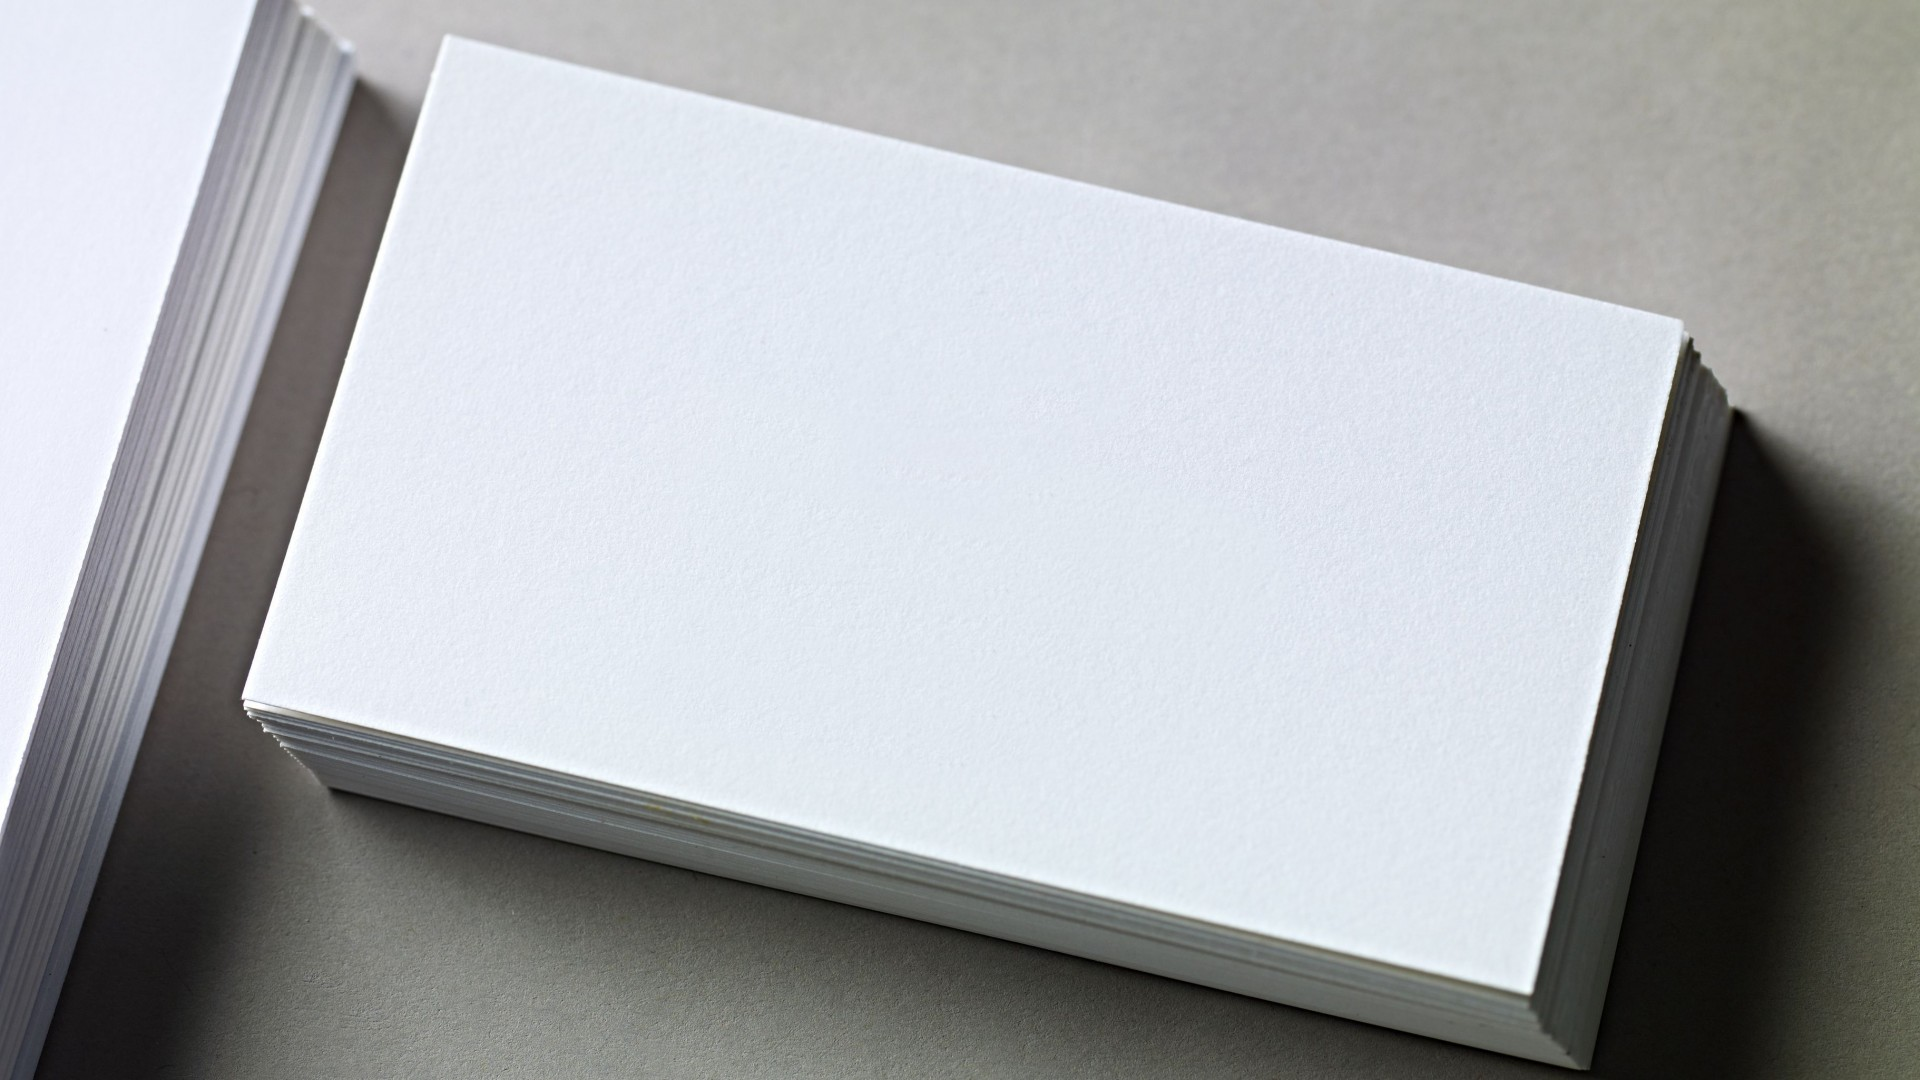 004 Wondrou Free Blank Busines Card Template Photoshop Highest Clarity  Download Psd1920